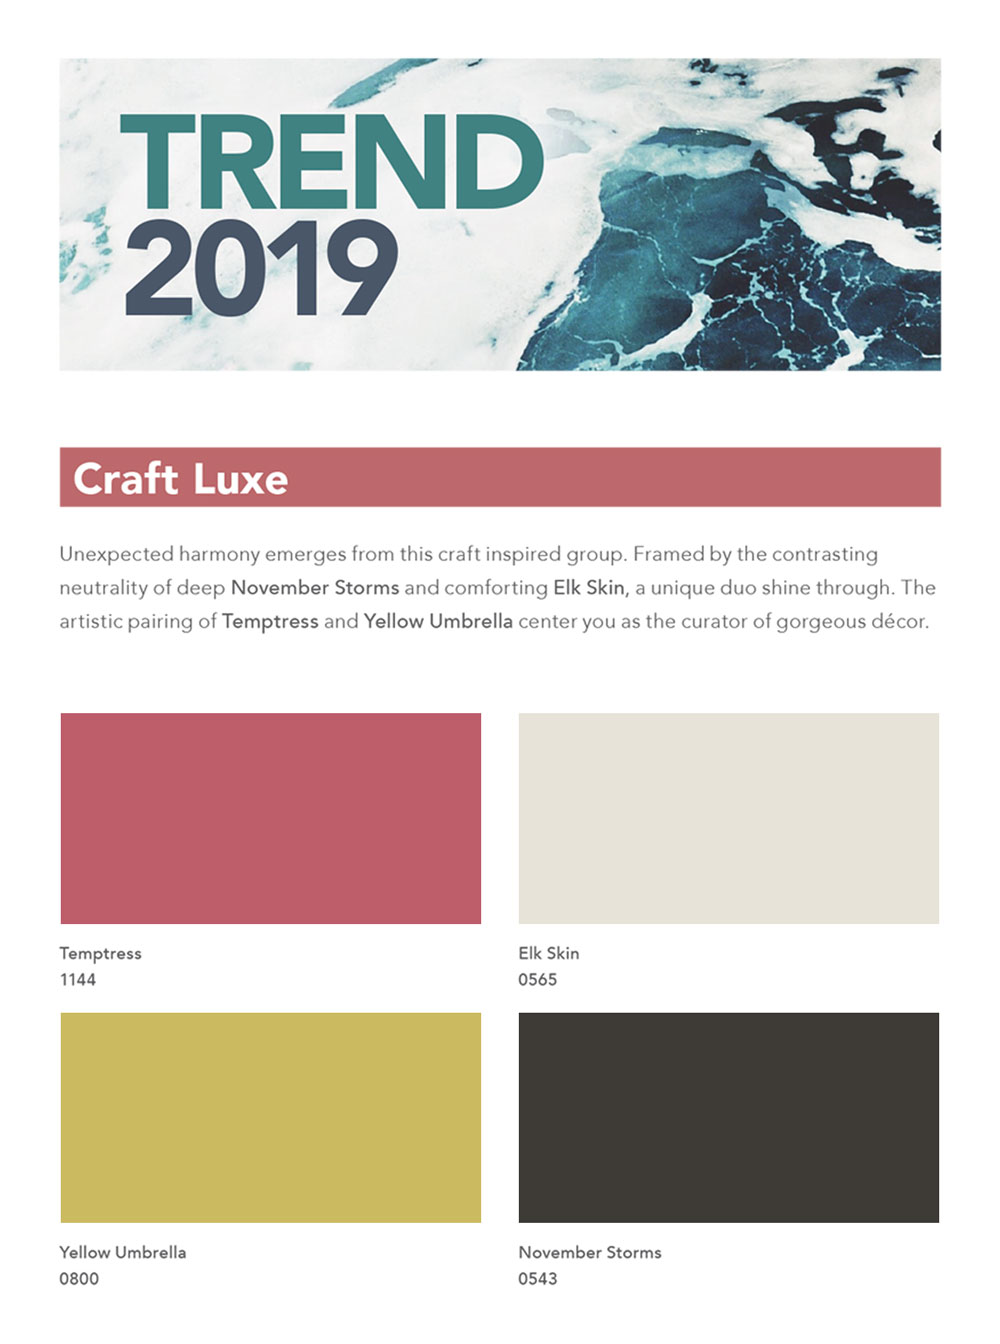 2019 Trends Craft Luxe